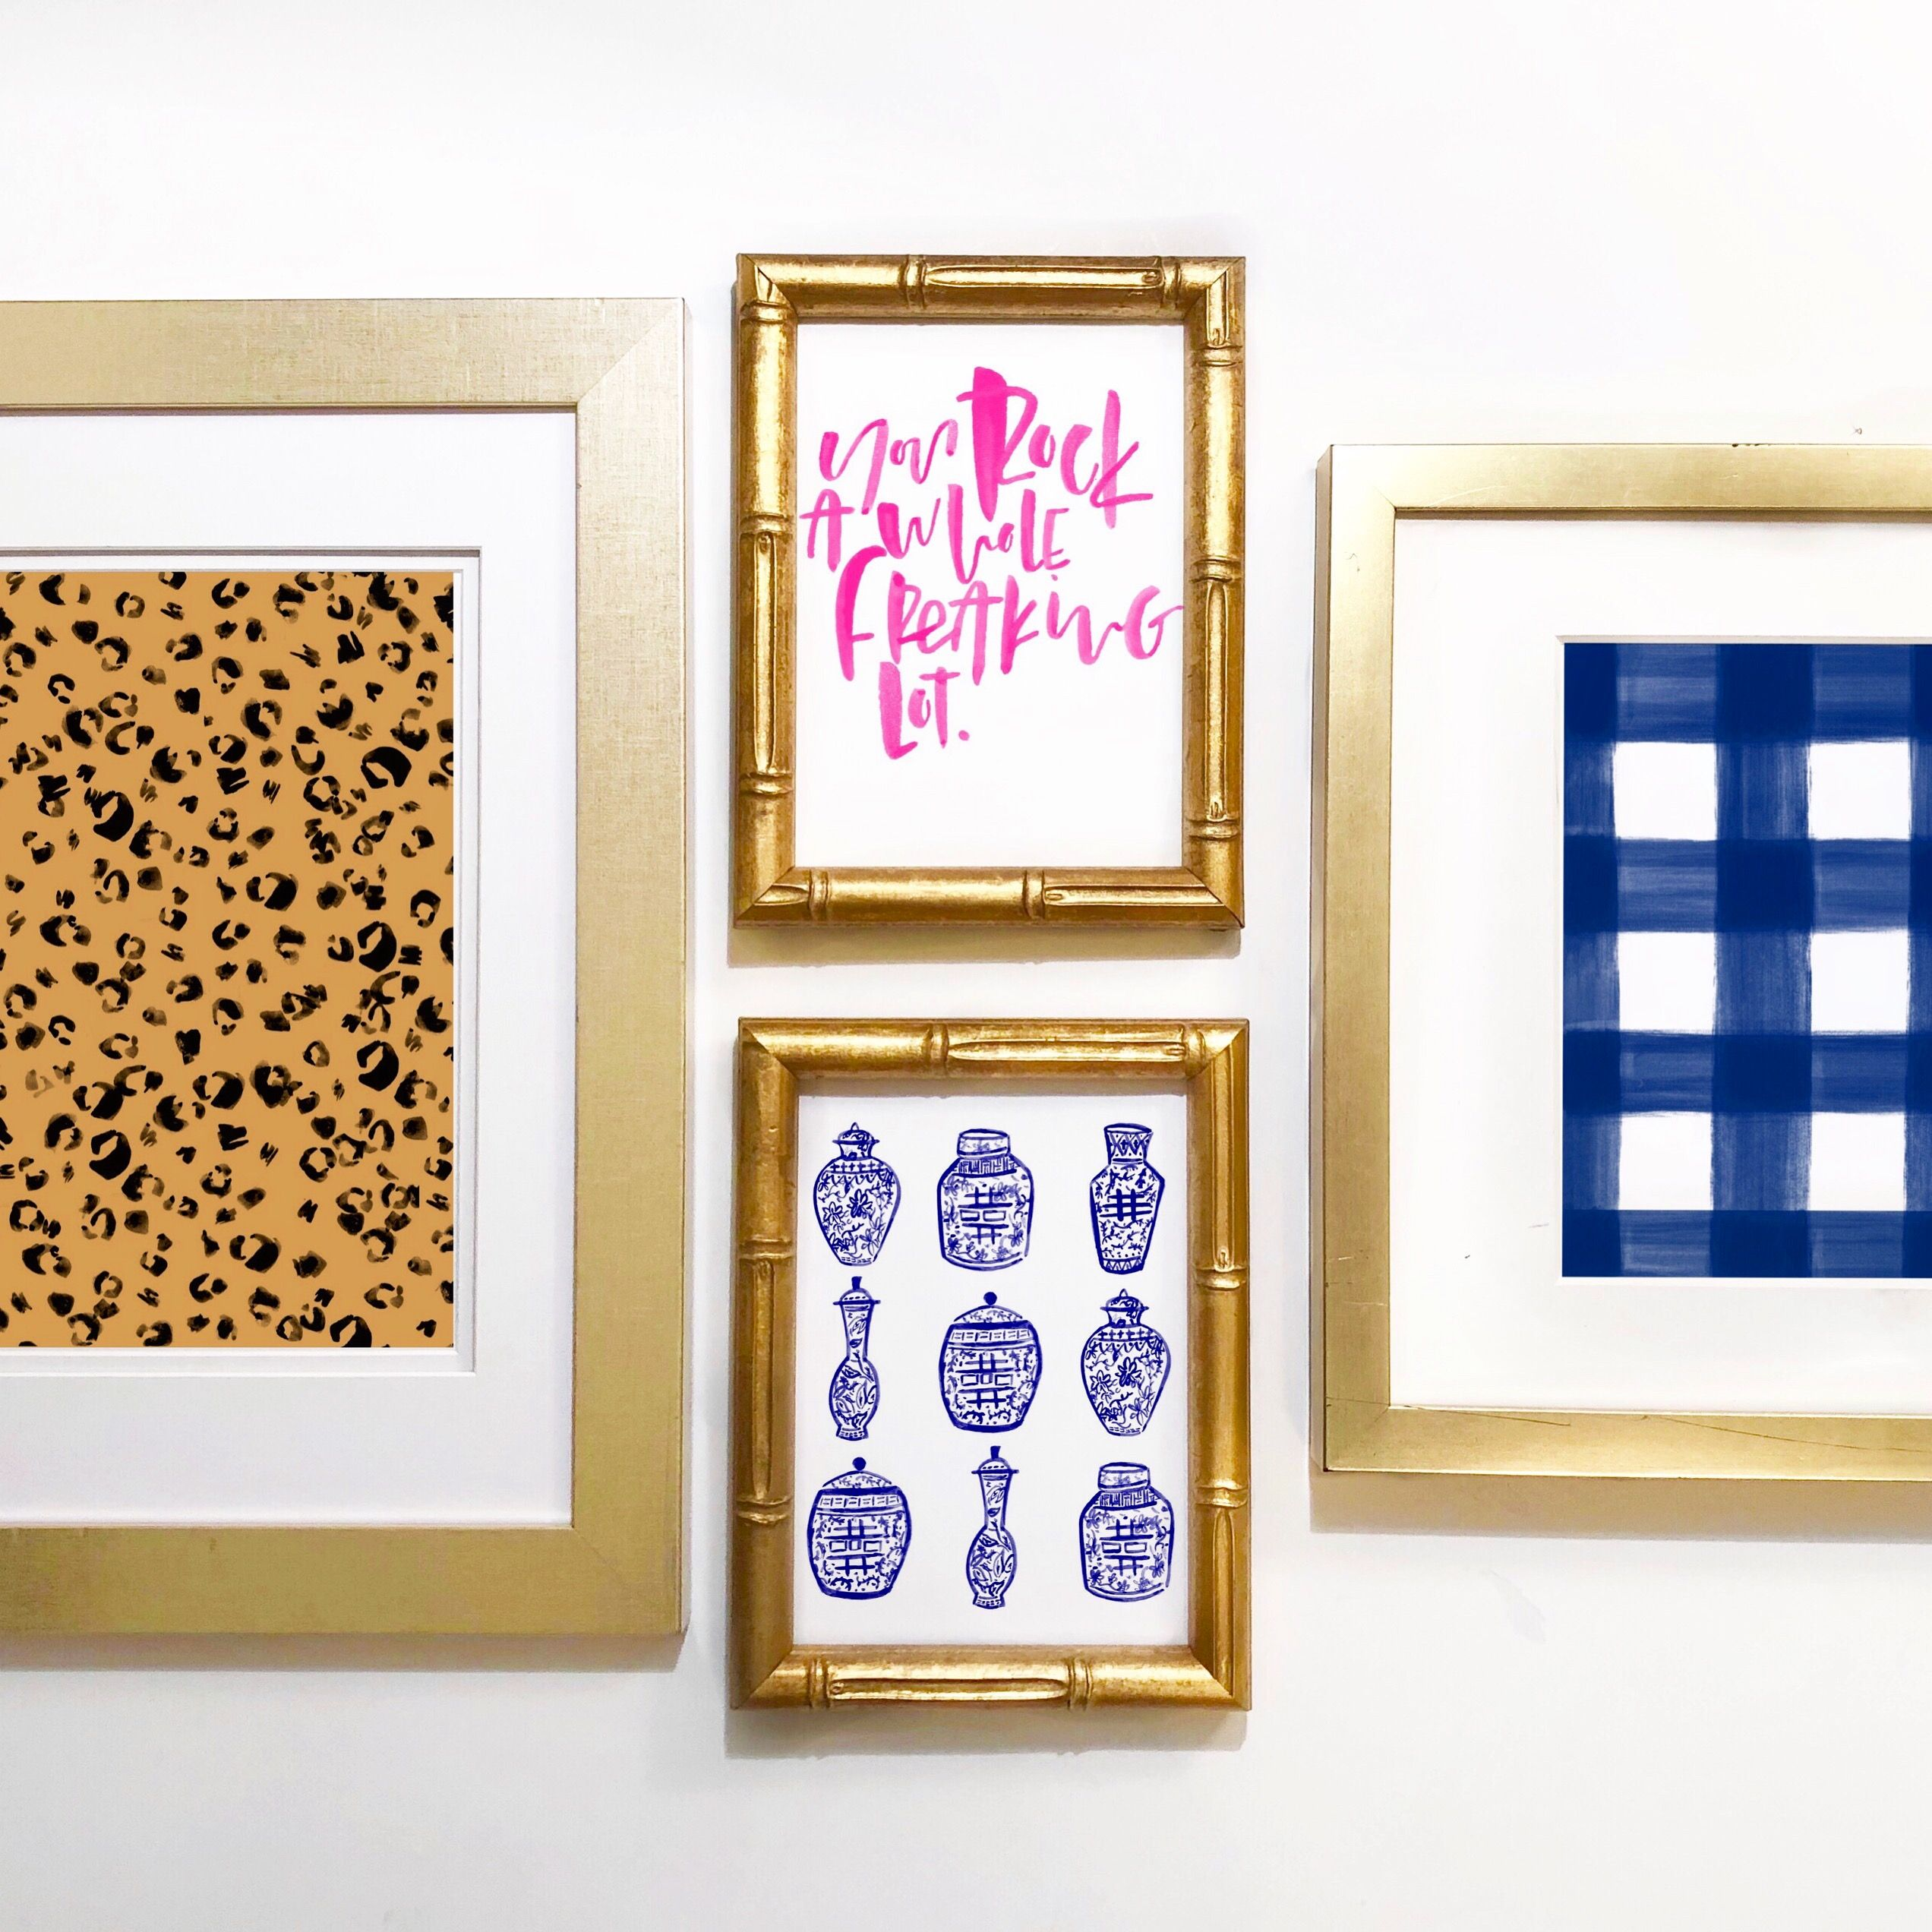 Up your gallery wall game by adding different sizes to the mix! This adds variations and makes the overall look more dynamic!